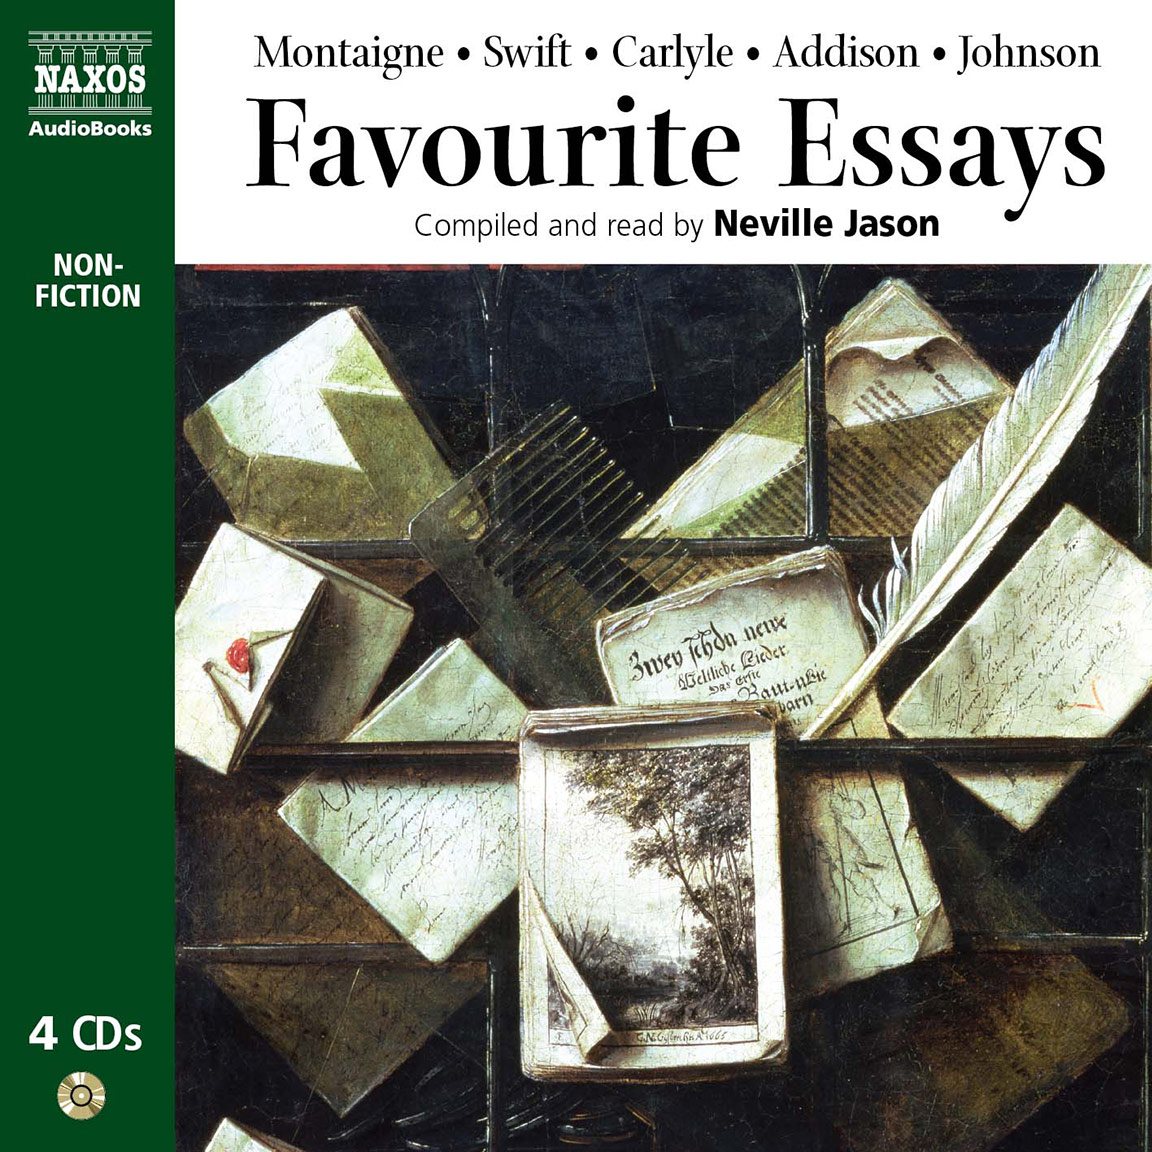 history of english poetry the unabridged naxos audiobooks favourite essays an anthology selections